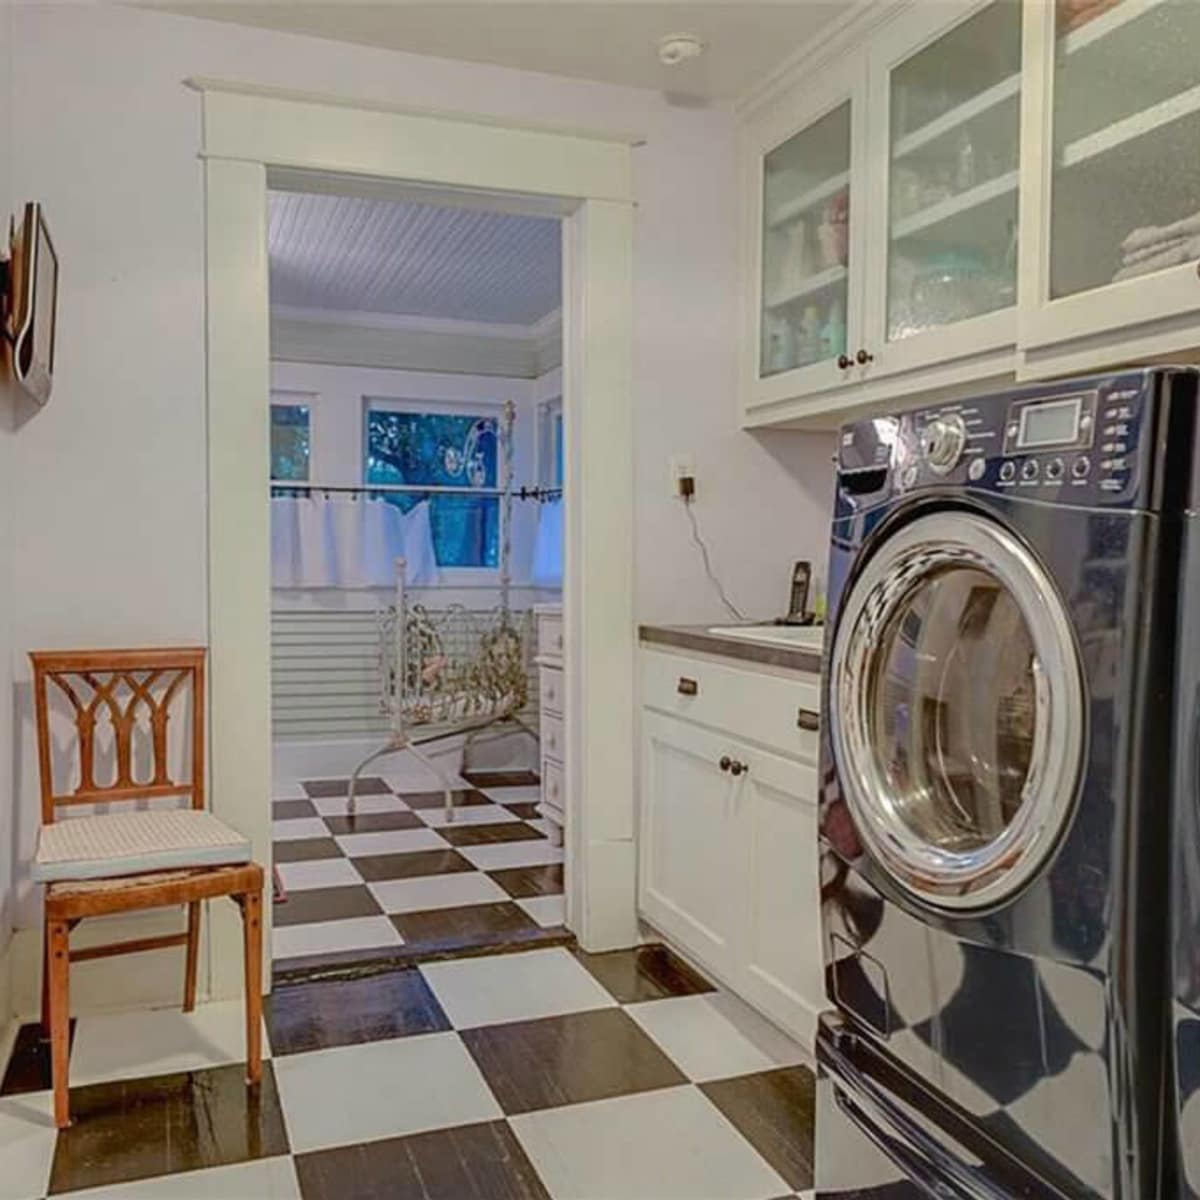 Laundry room at 701 S. Clinton Ave.